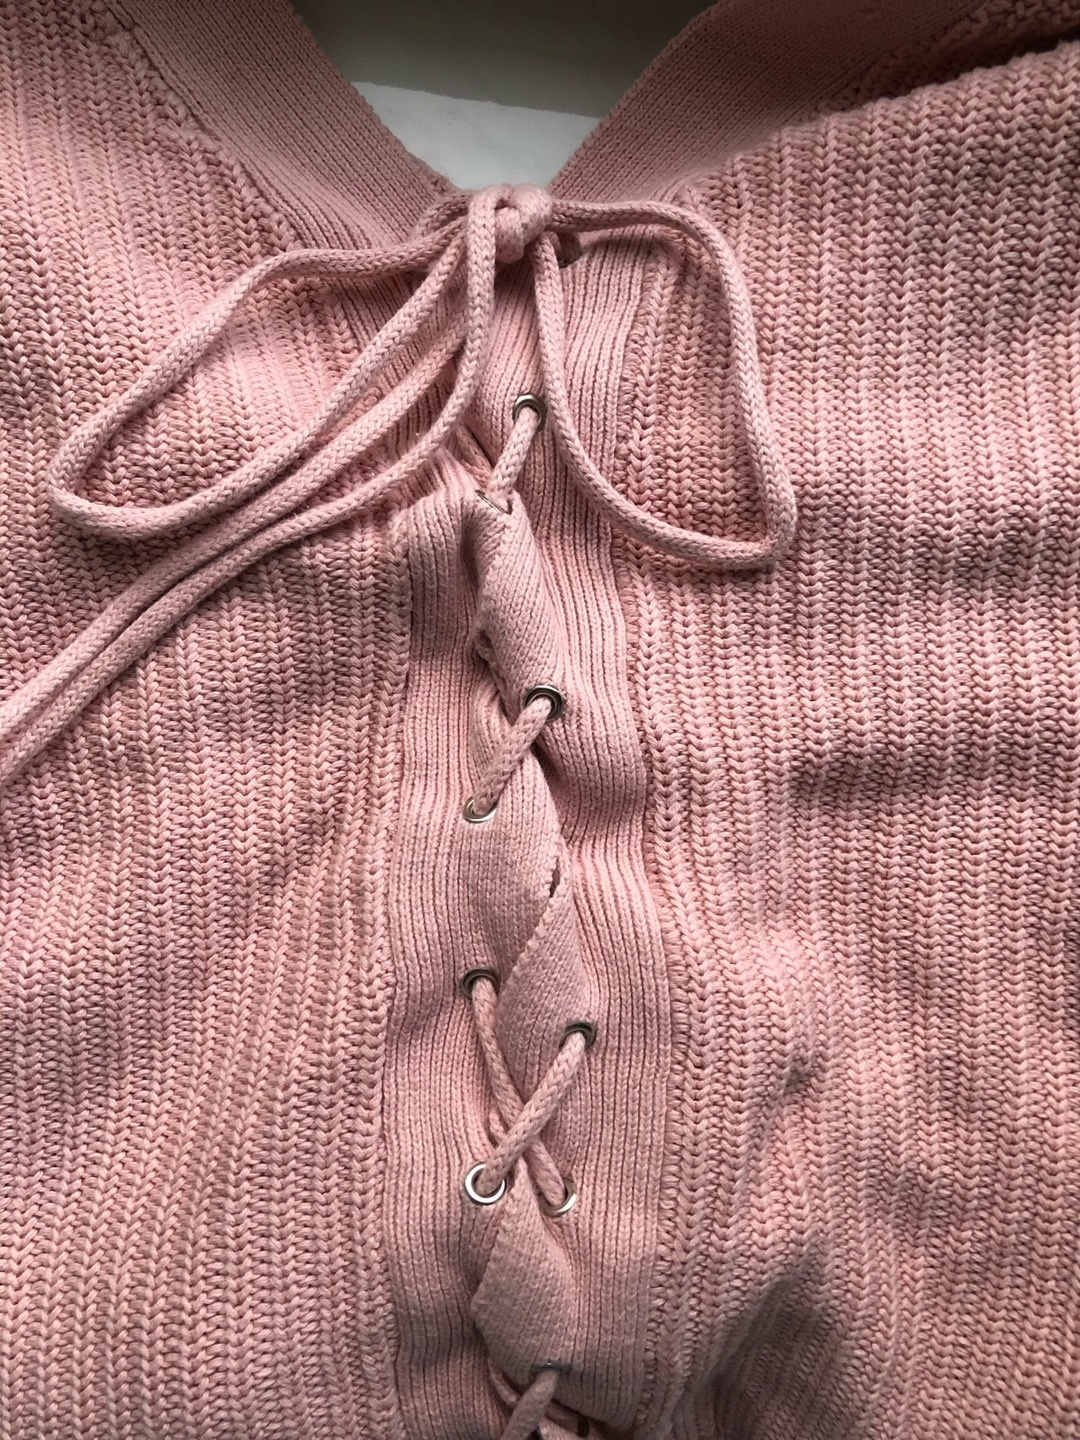 Women's jumpers & cardigans - NLY photo 3